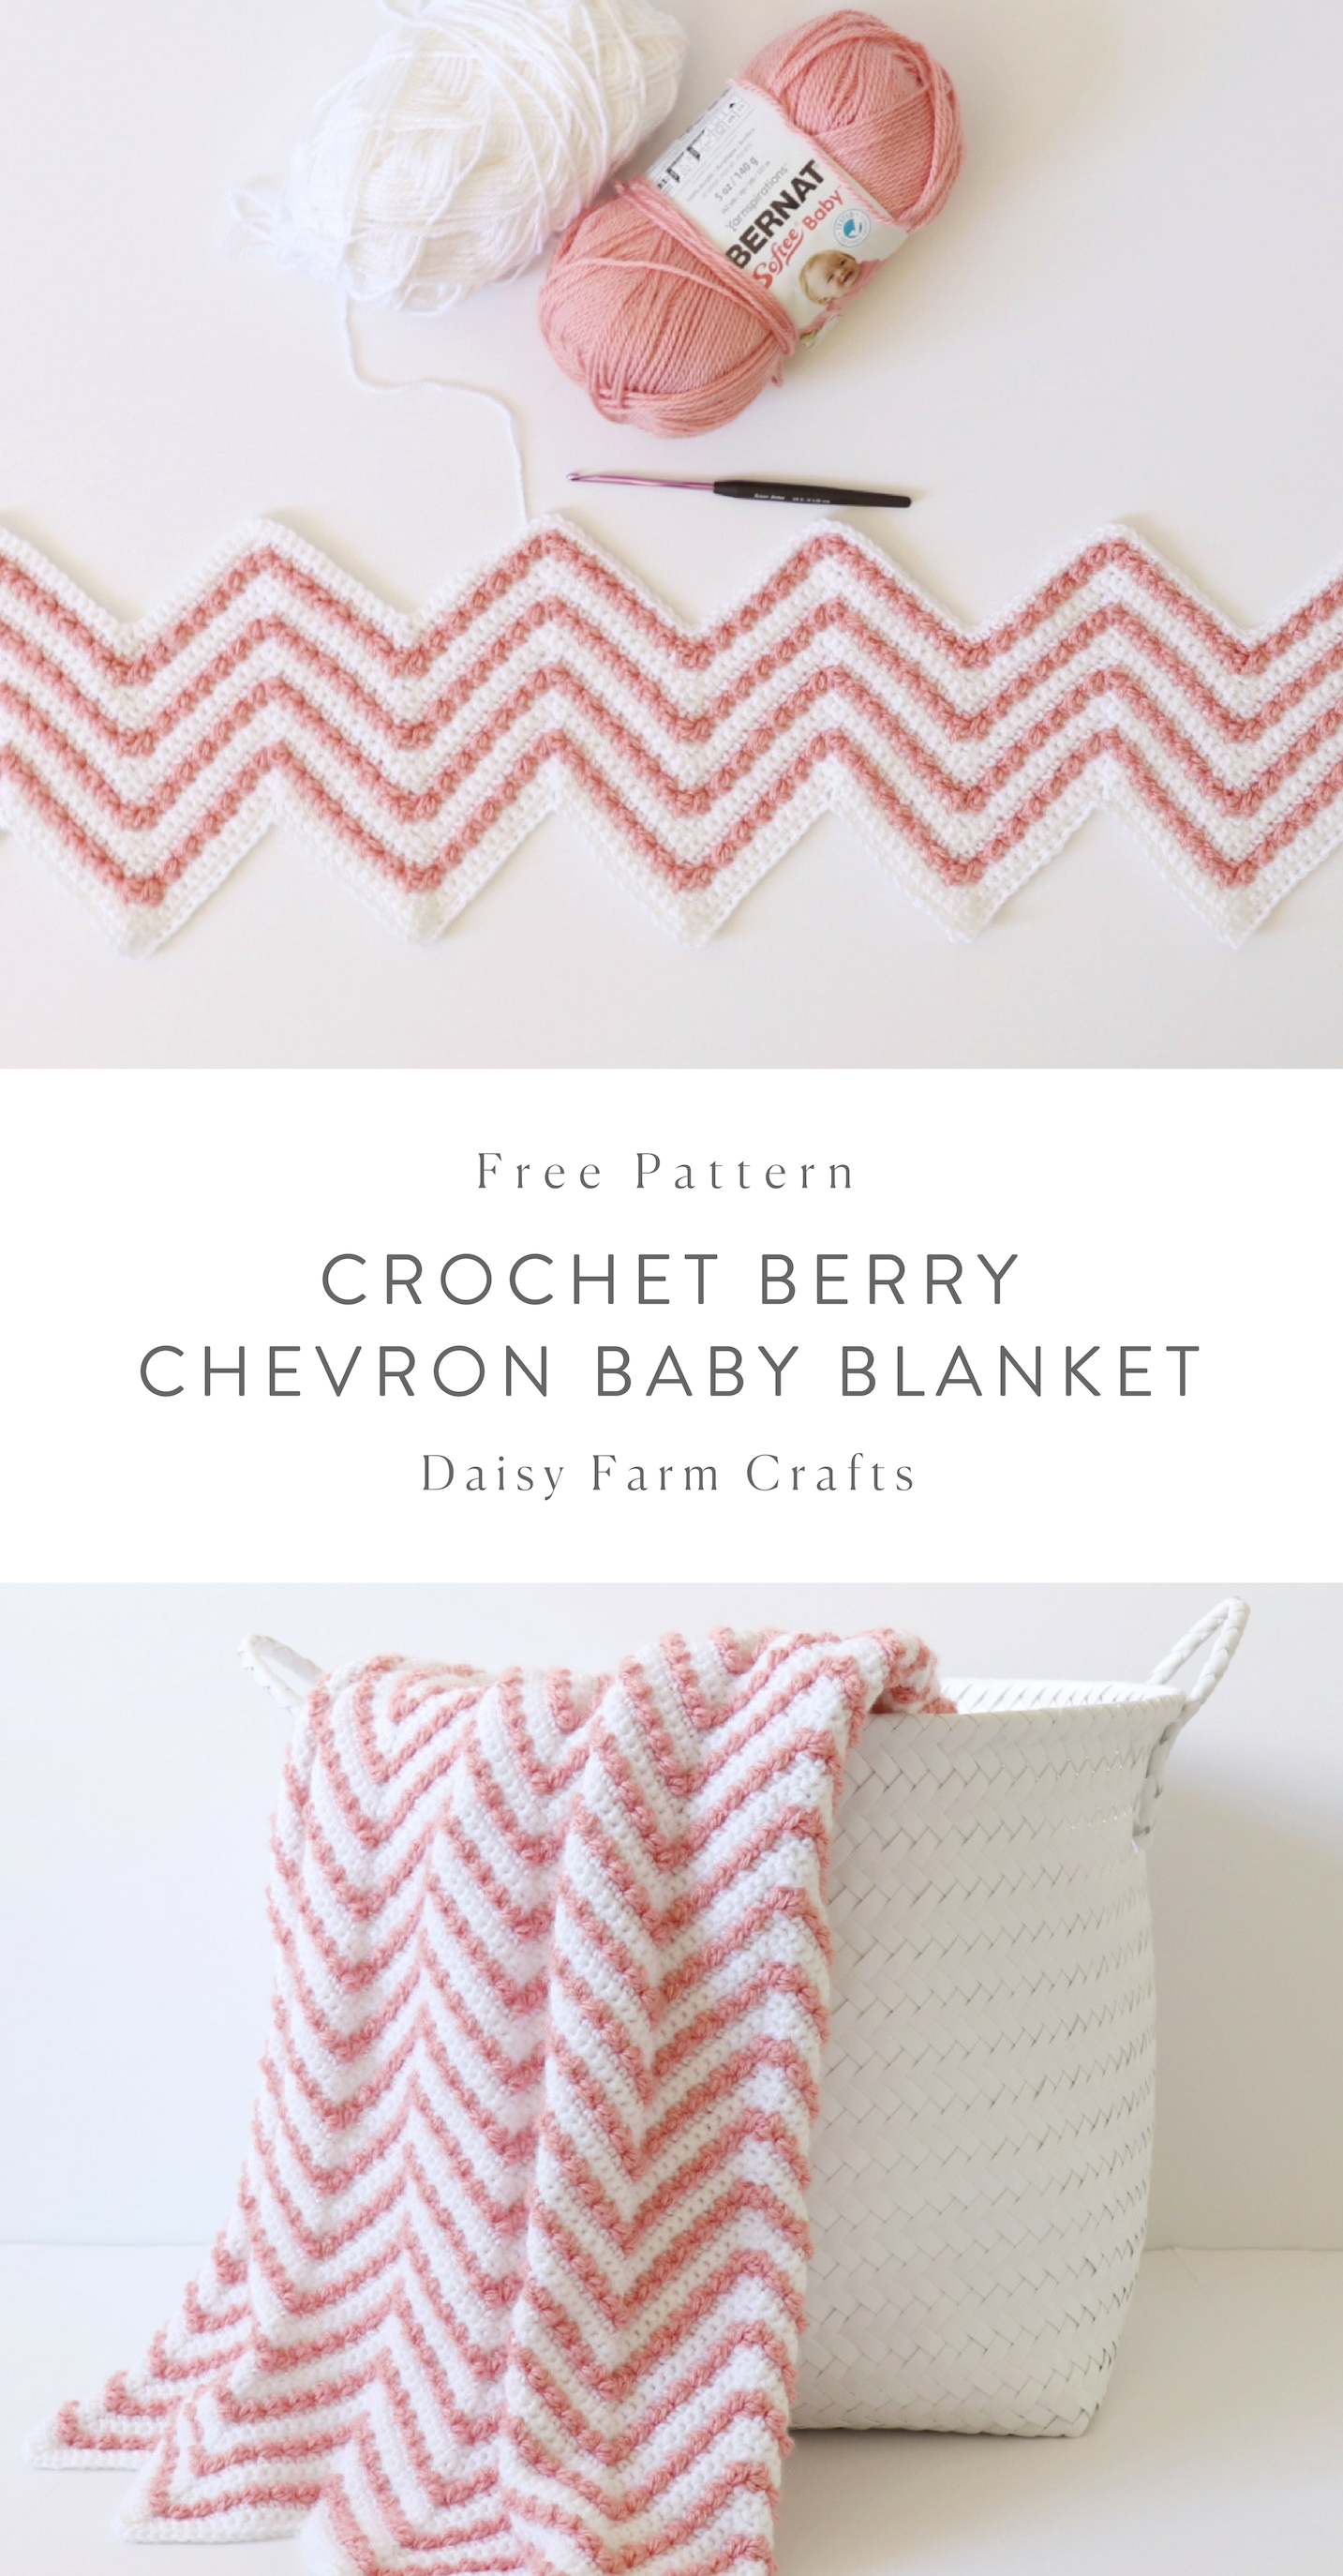 Free Pattern - Crochet Berry Chevron Baby Blanket | Baby Gifts ...